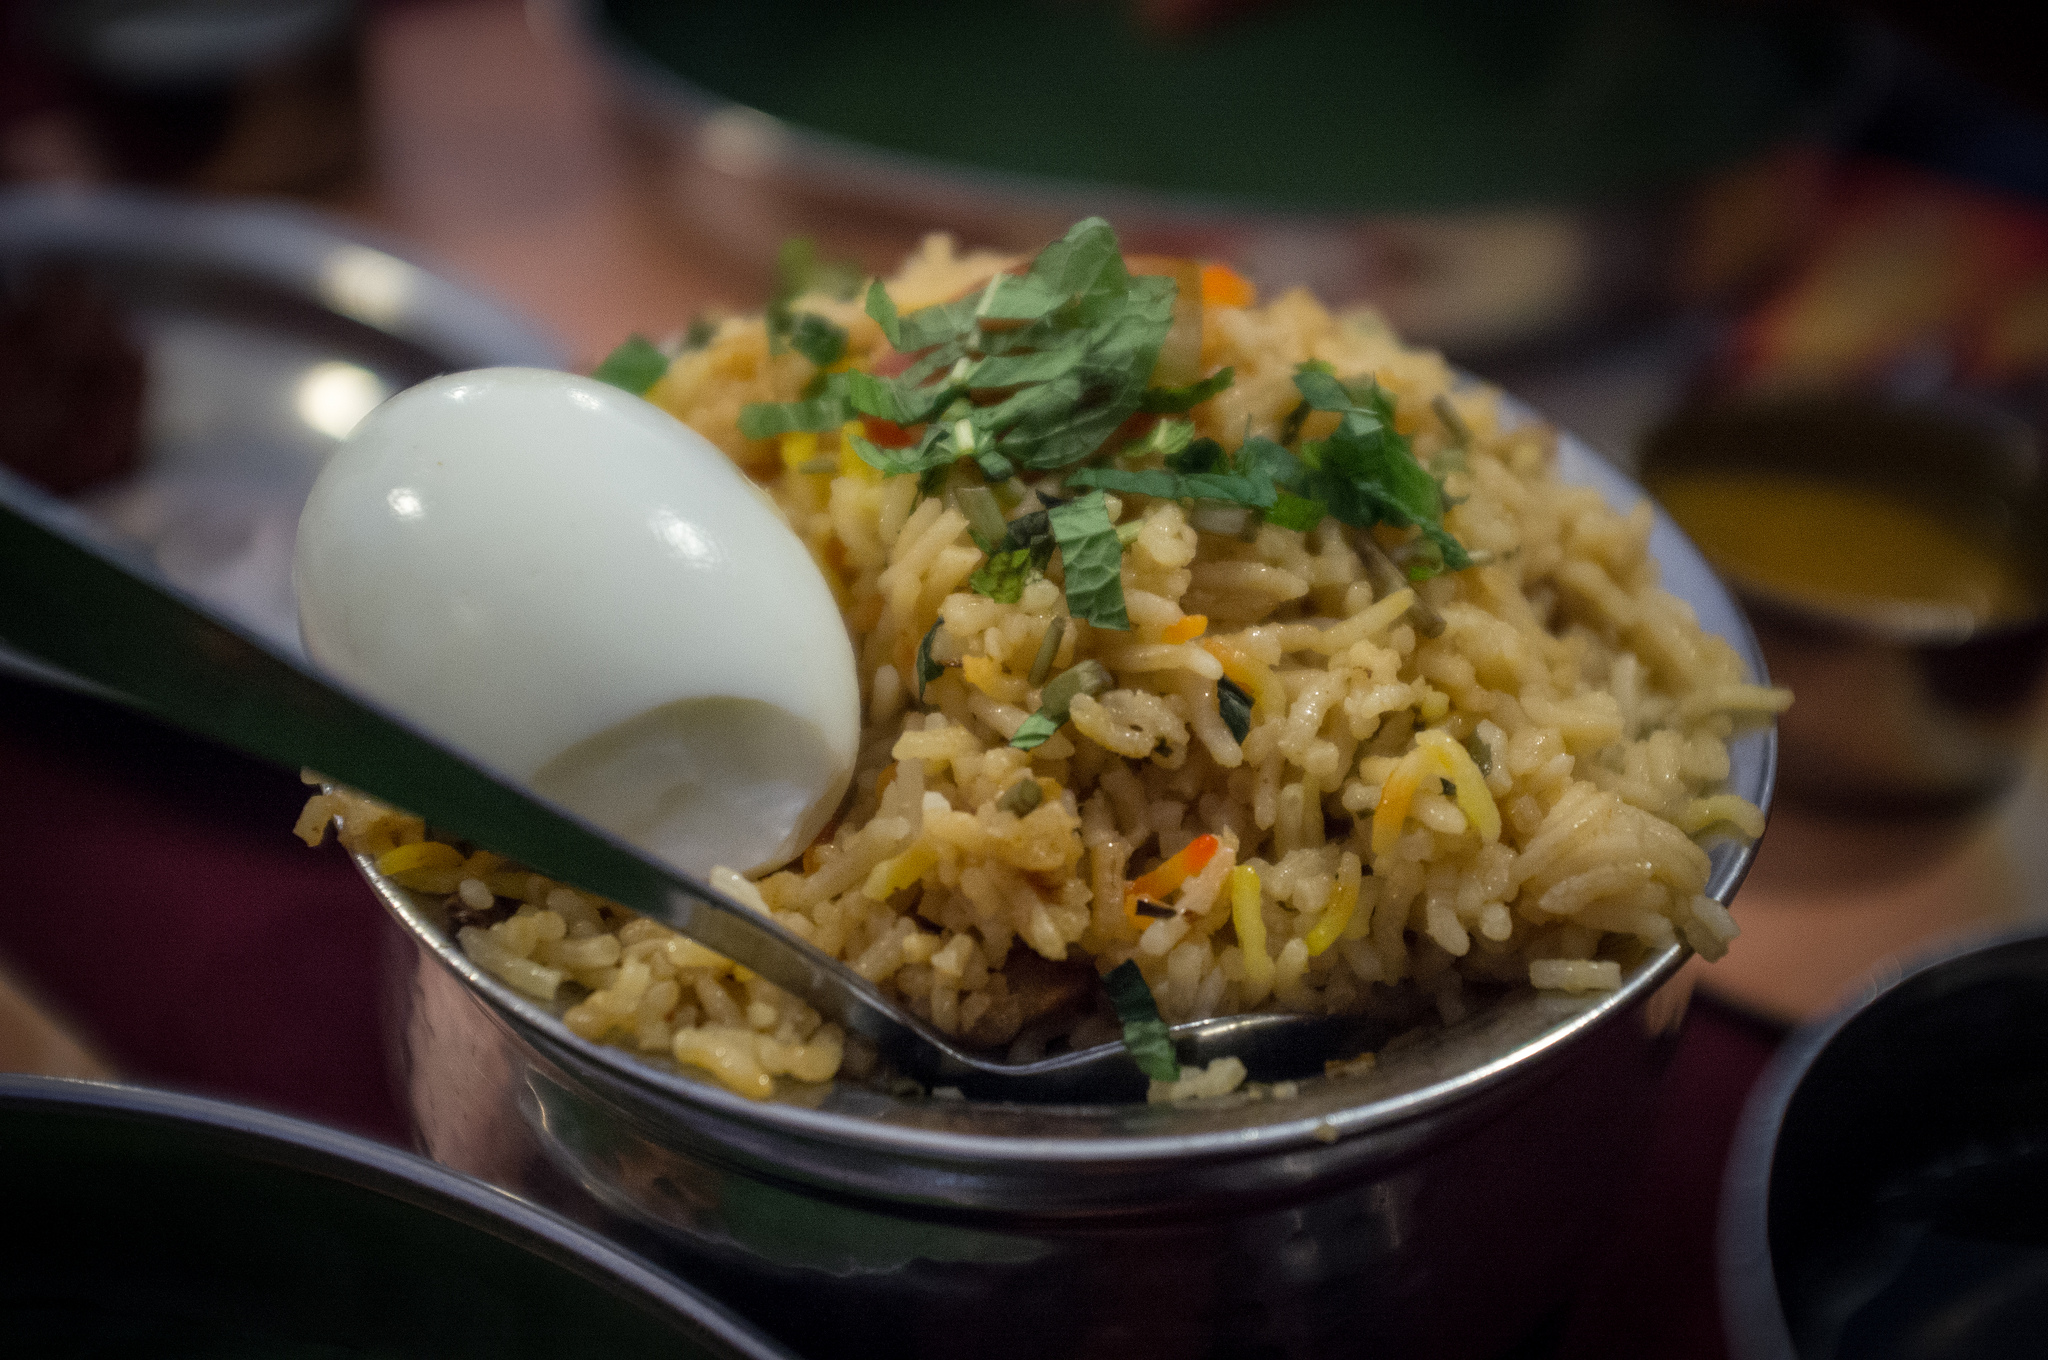 Enjoy a classic indian dish the Biriyani. |©Indi Samarajiva/flickr